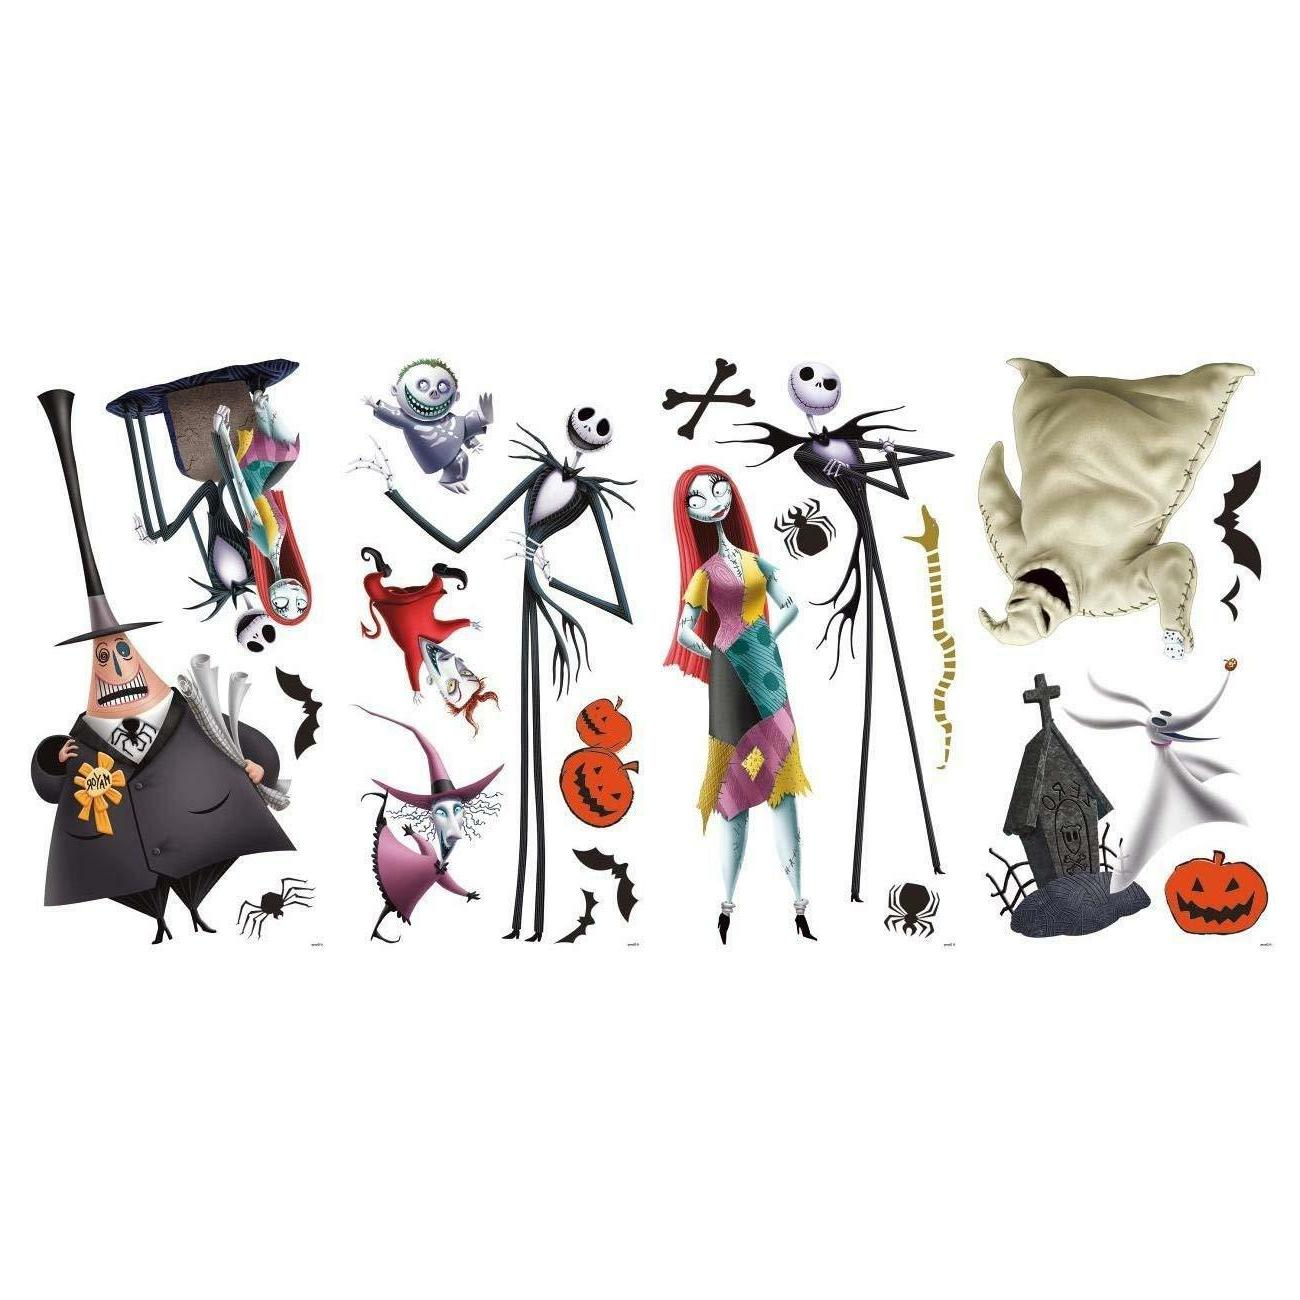 THE NIGHTMARE BEFORE WaLL DeCaLS Sally Room Decor Oogie